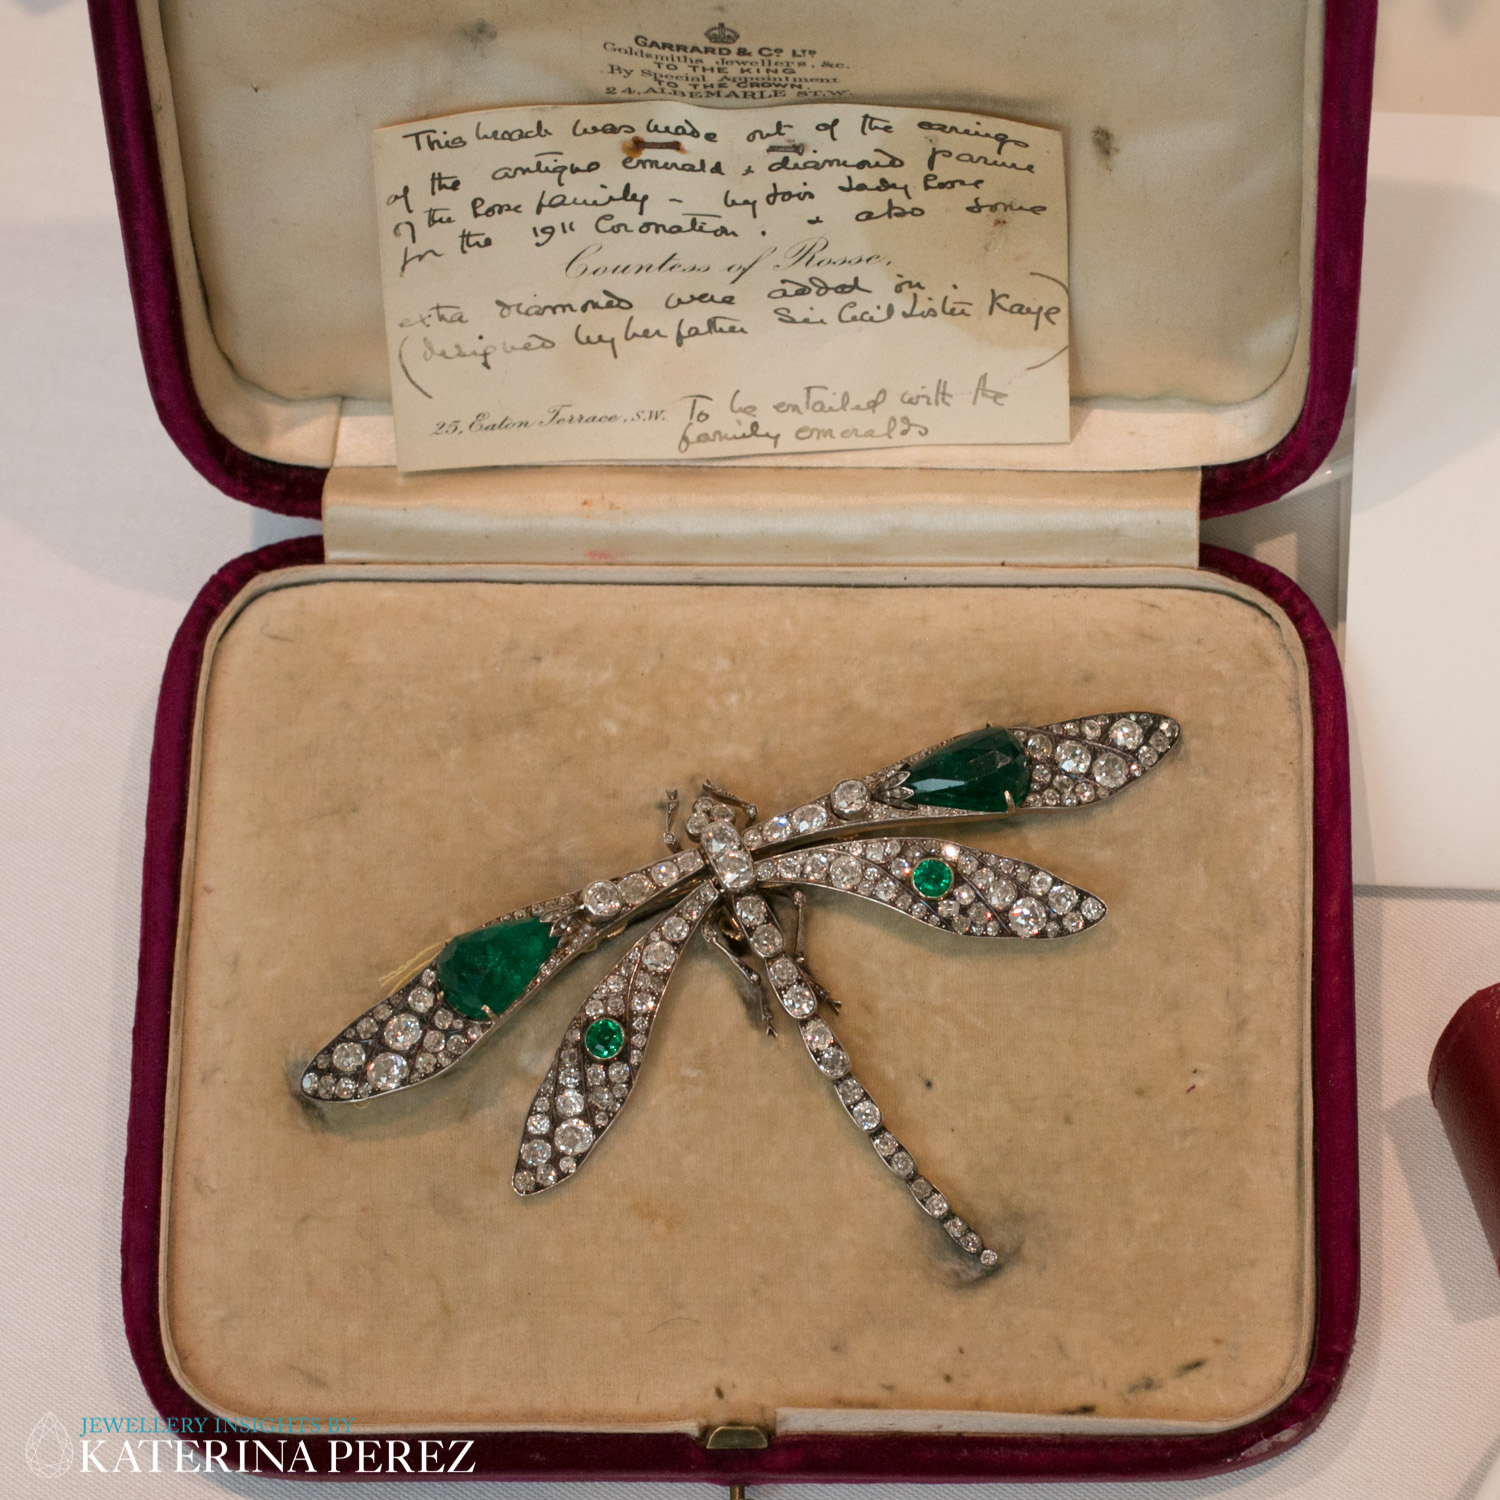 An Emerald and Diamond Dragonfly Brooch, circa 1910. Mounted in silver and yellow gold, diamonds total 13.25 carats